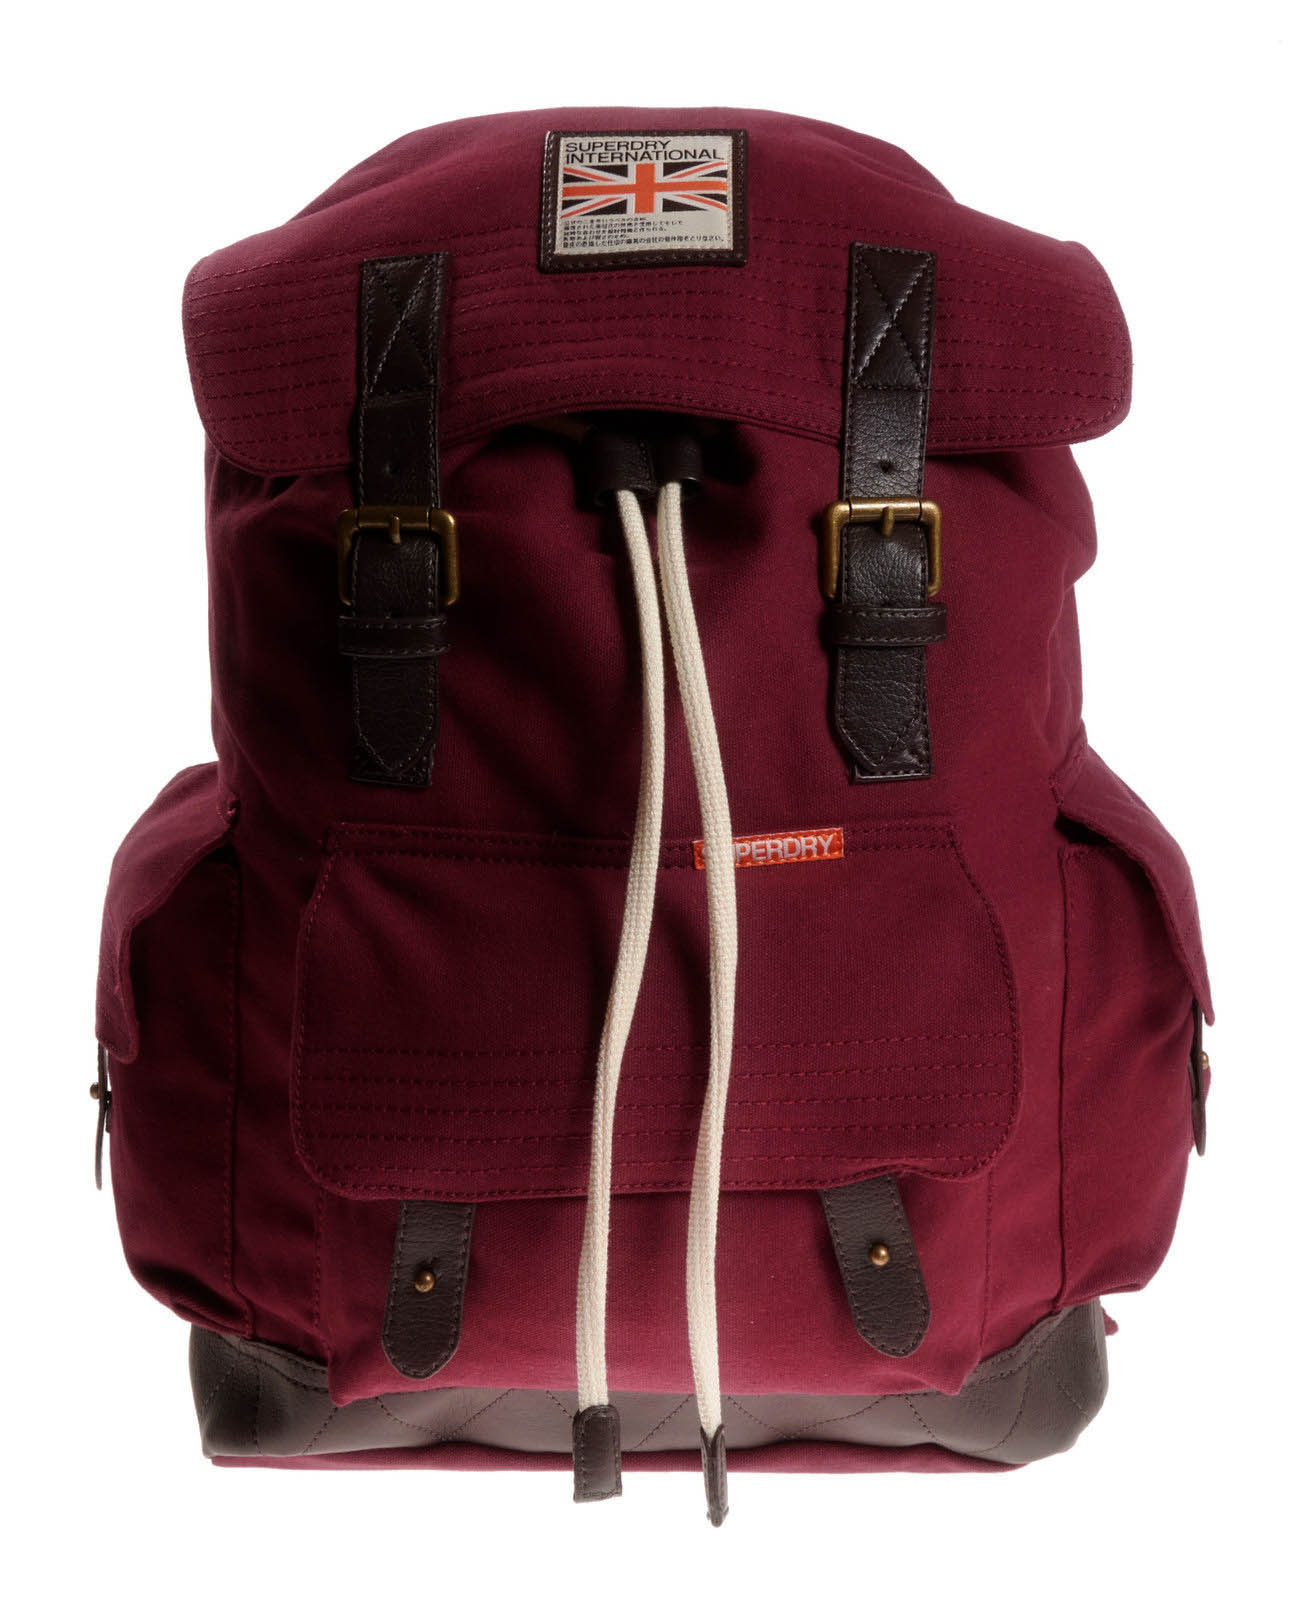 superdry-bags-on-sale-2